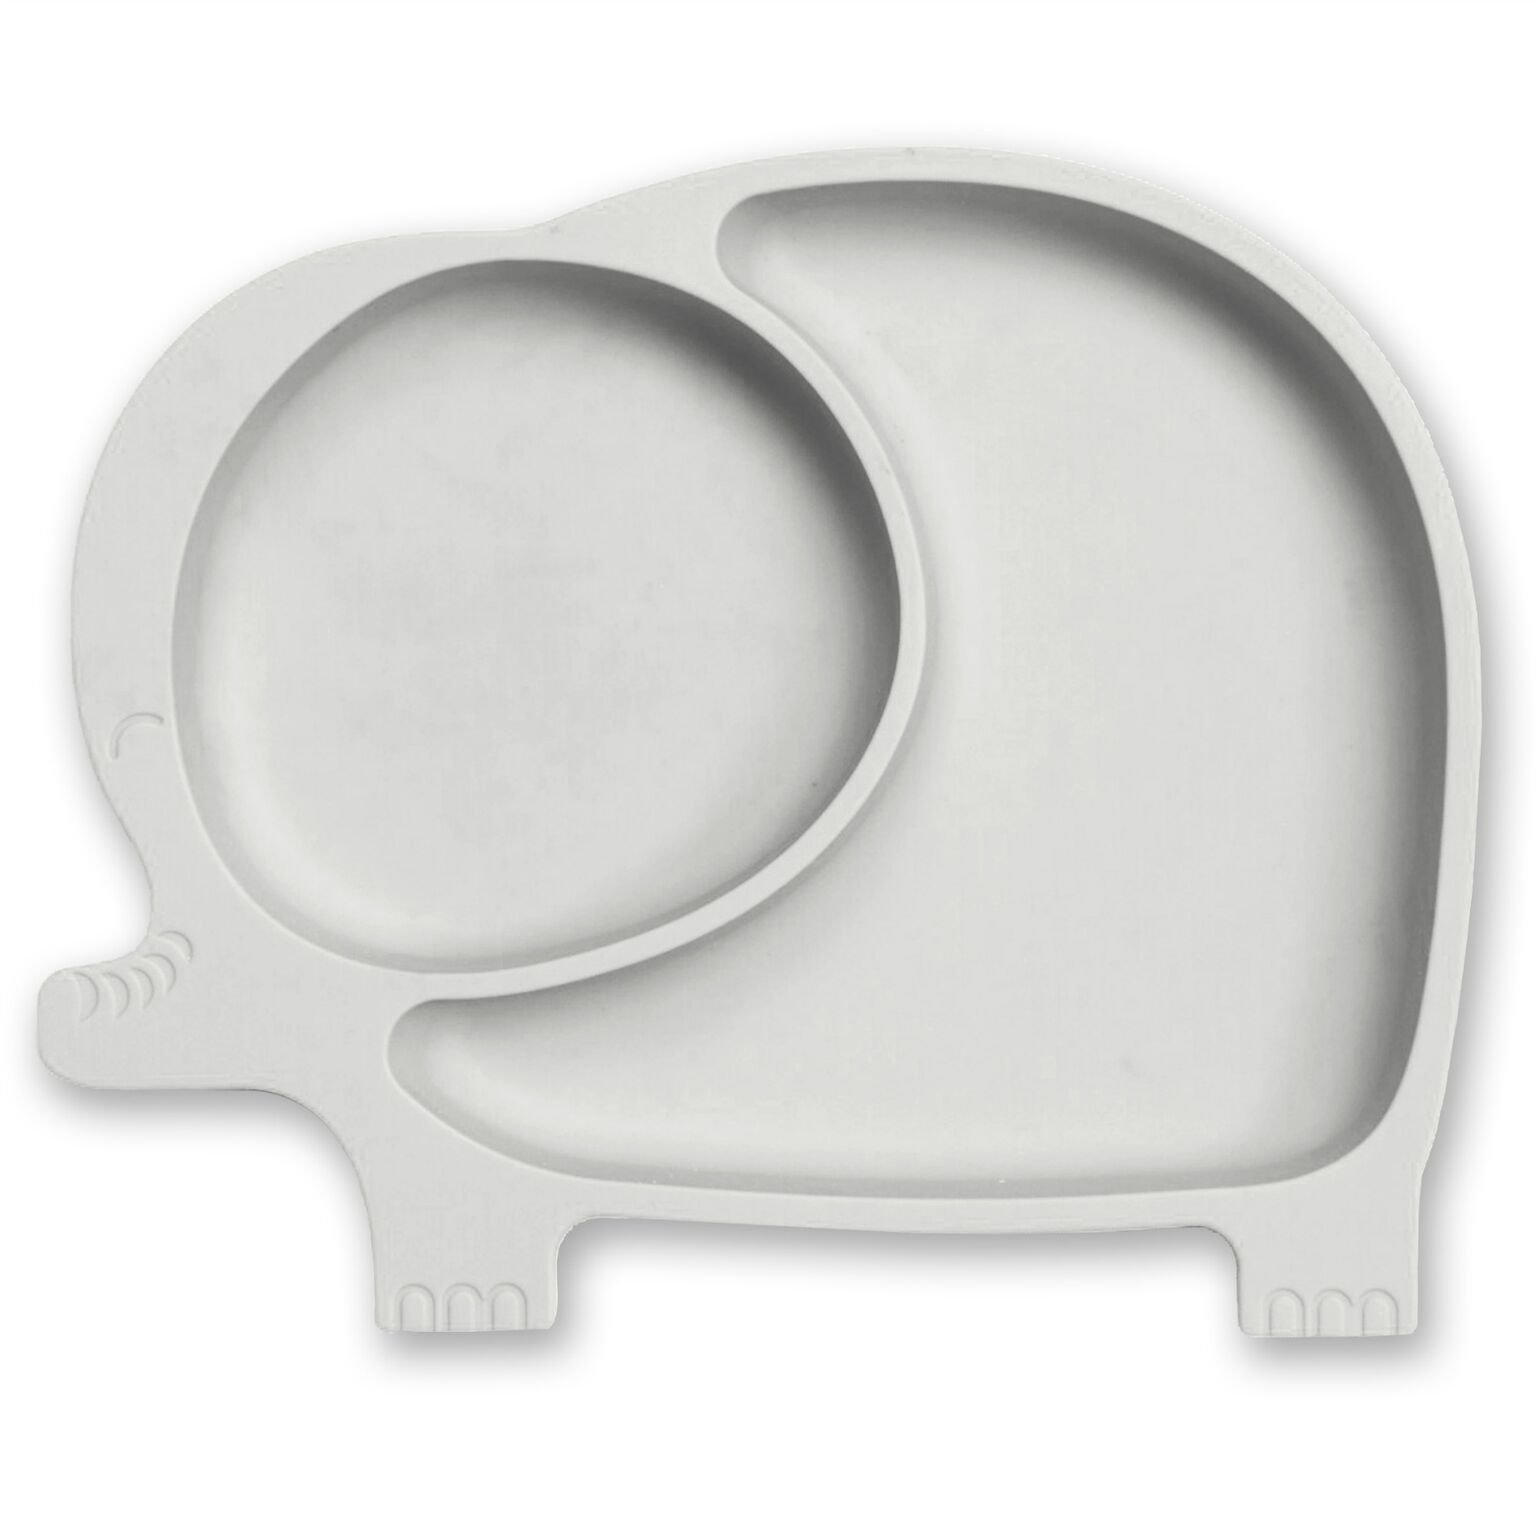 Sage Spoonfuls Sili Elephant Silicone Suction Divided Toddler Plate, Grey by Sage Spoonfuls